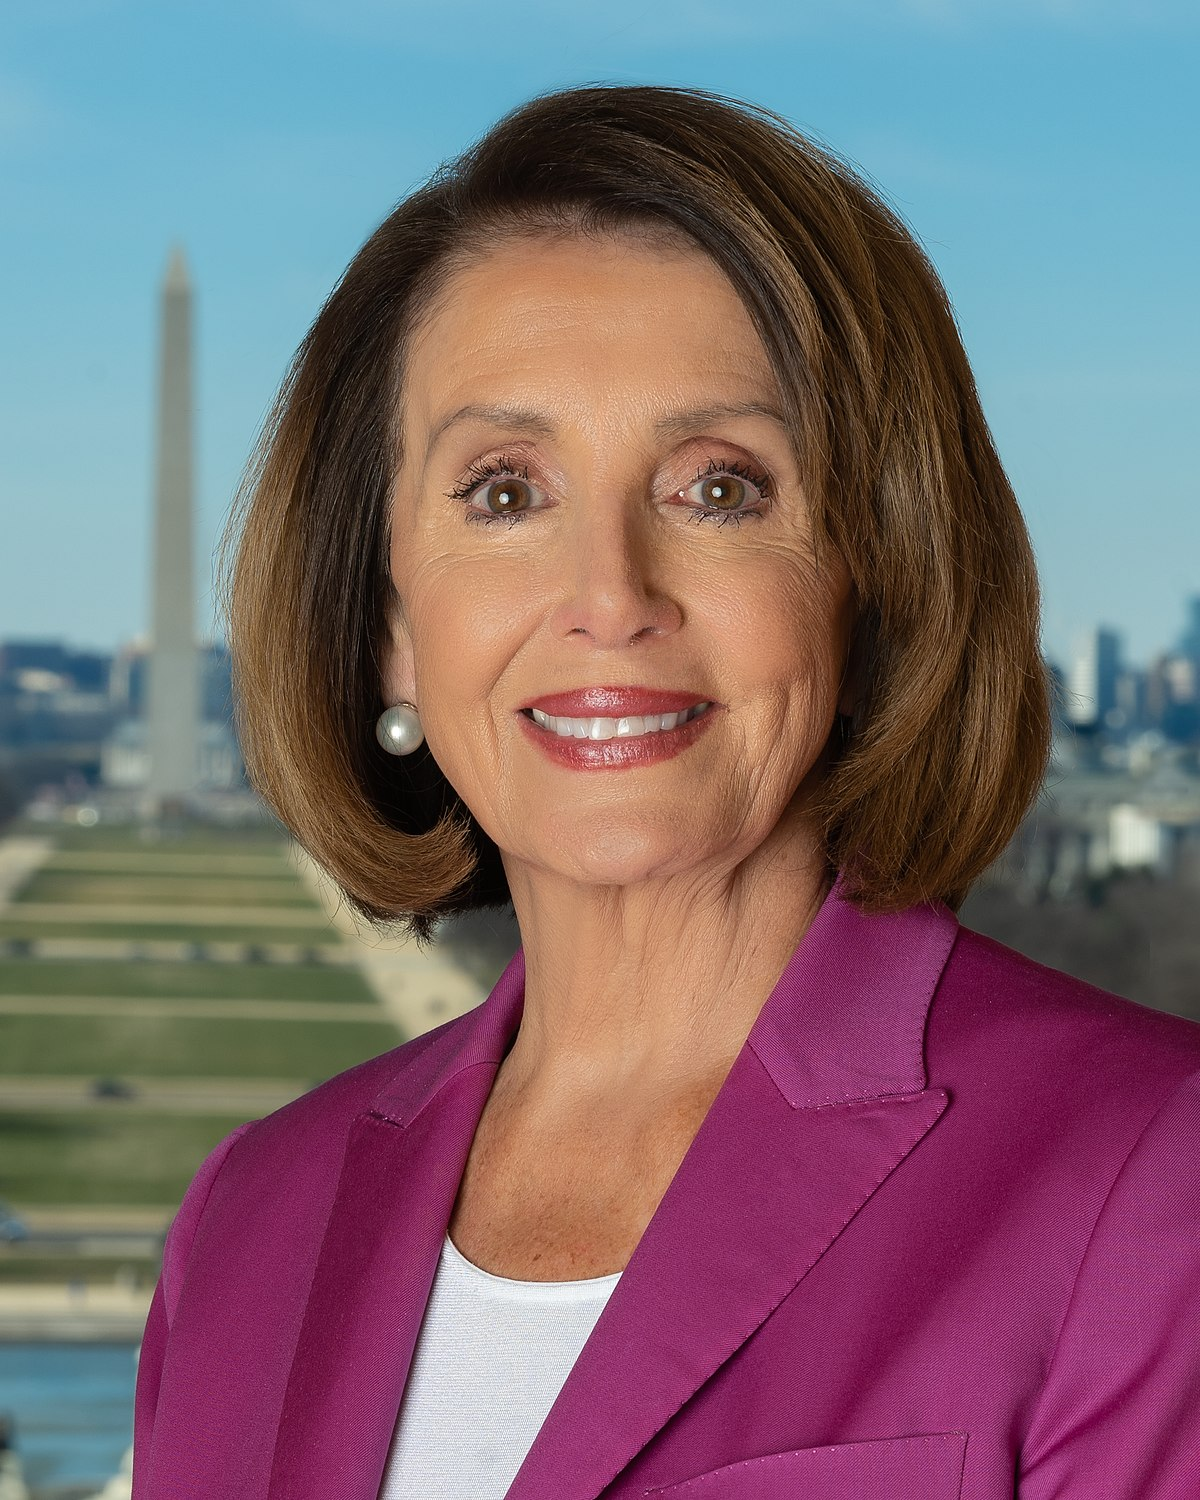 Pelosi invests $1 million in company that launched 'Russia meddling' scandal